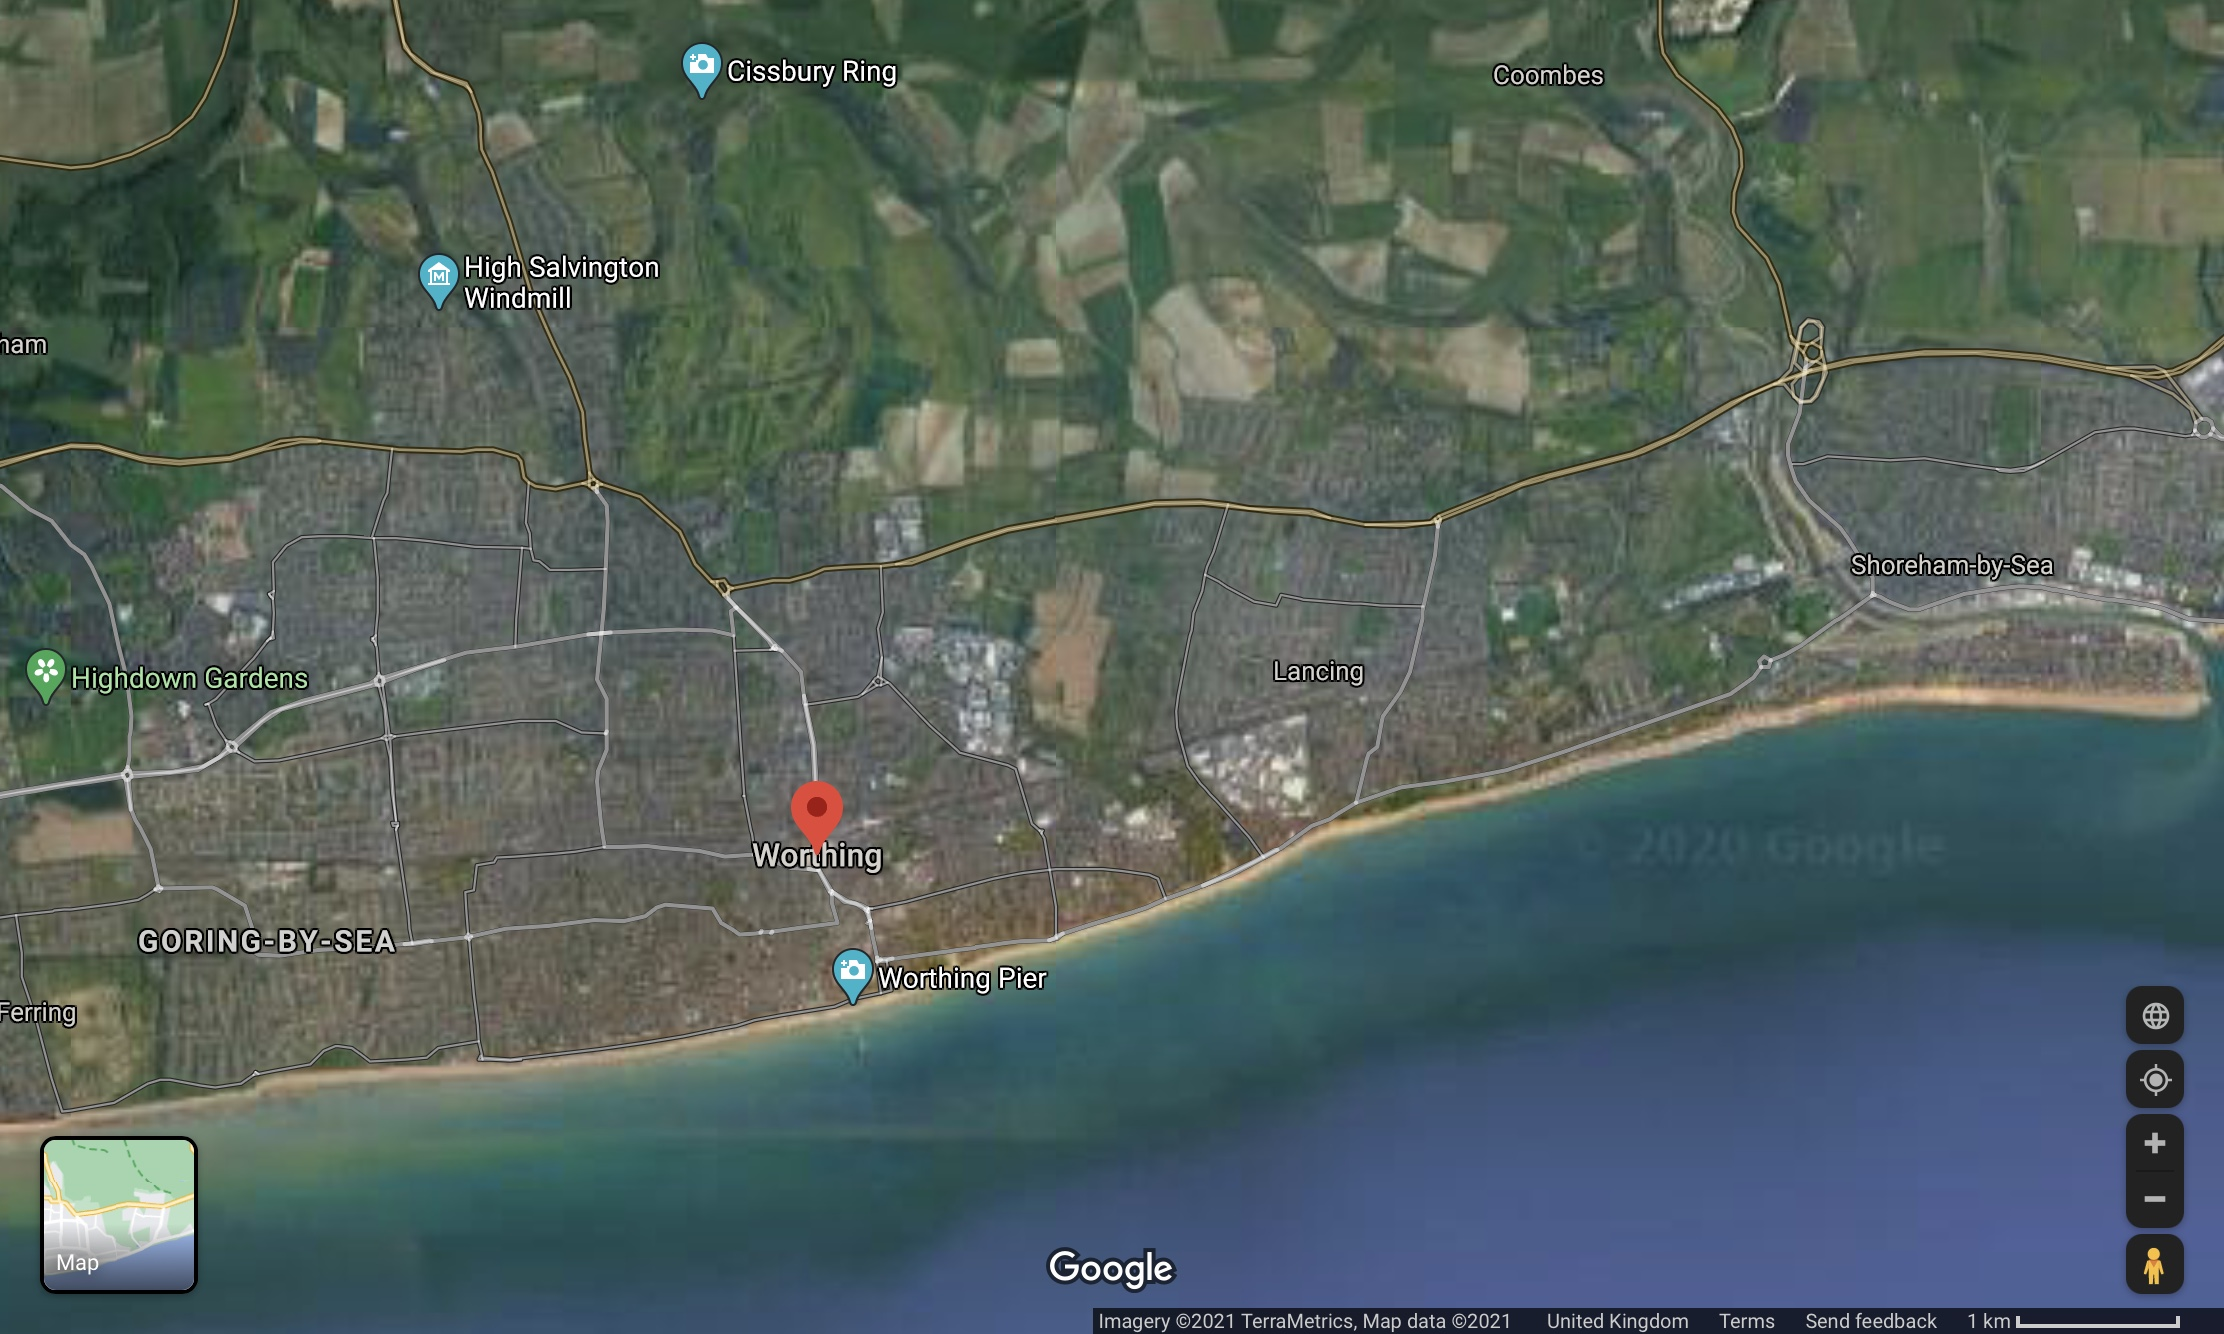 Google map showing Adur and Worthing